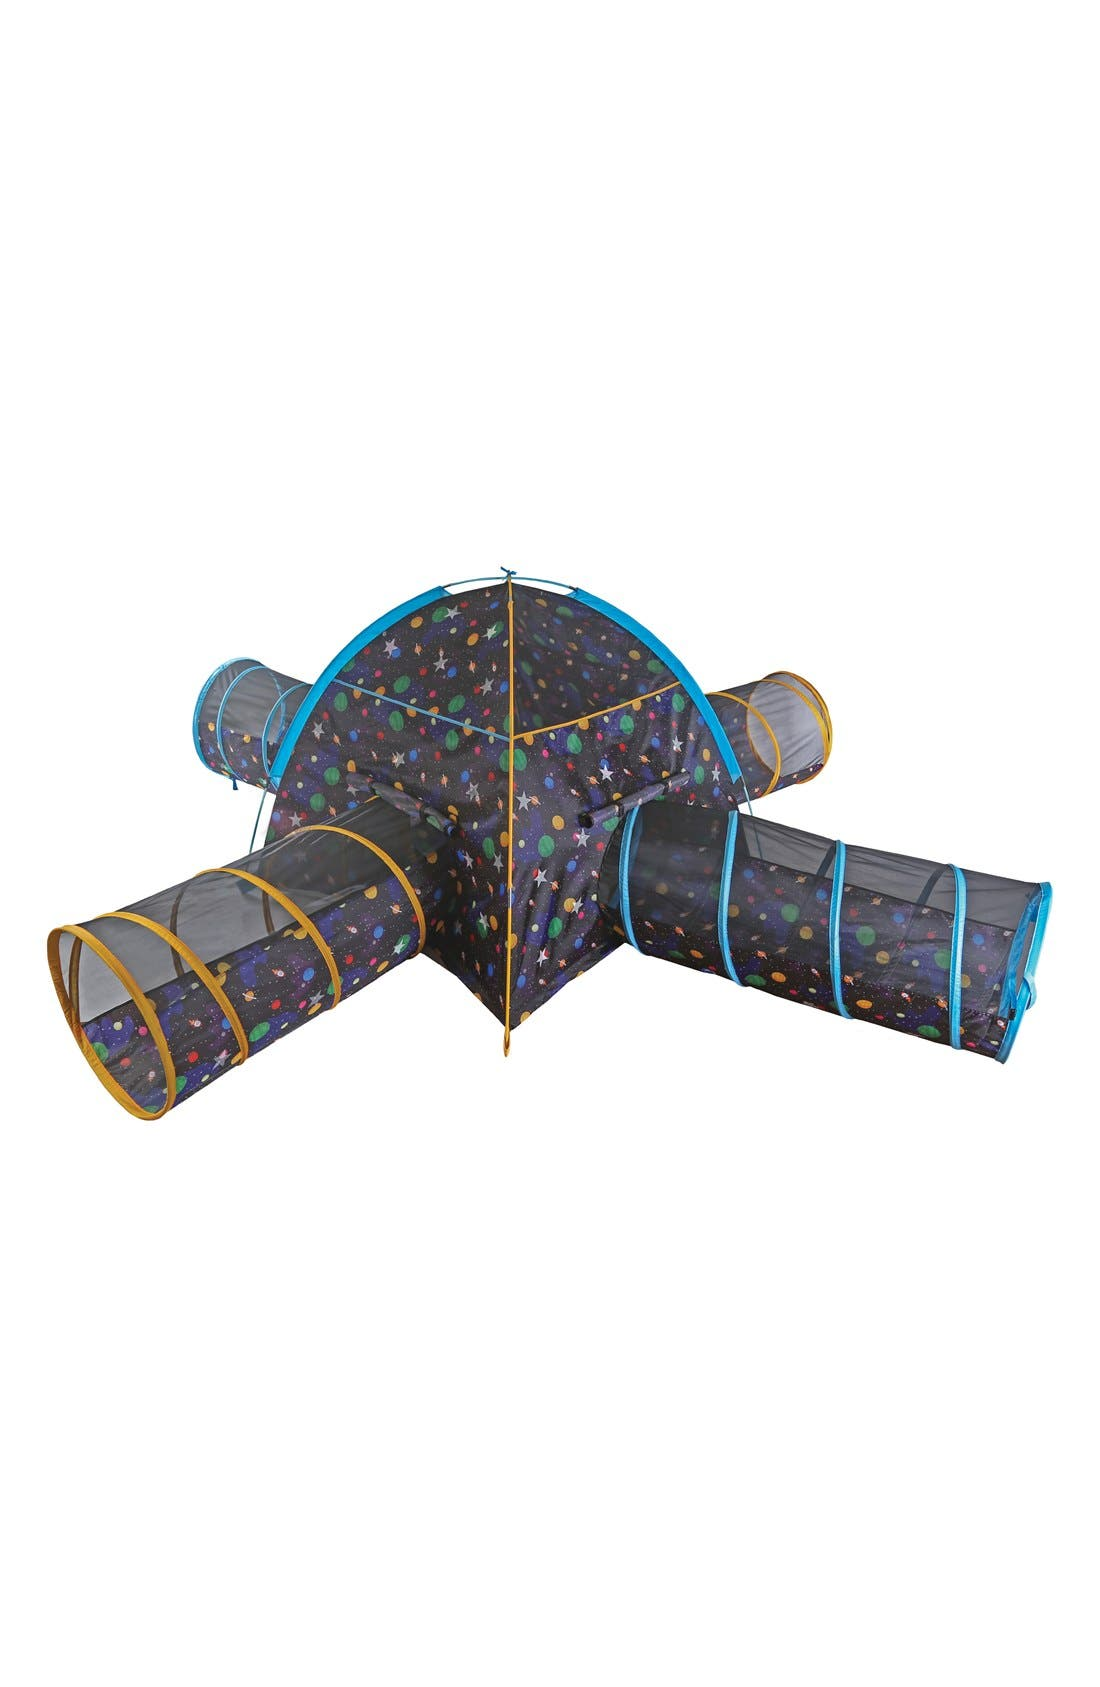 'Galaxy Junction' Dome Tent with Connecting Tunnels,                             Main thumbnail 1, color,                             Multi